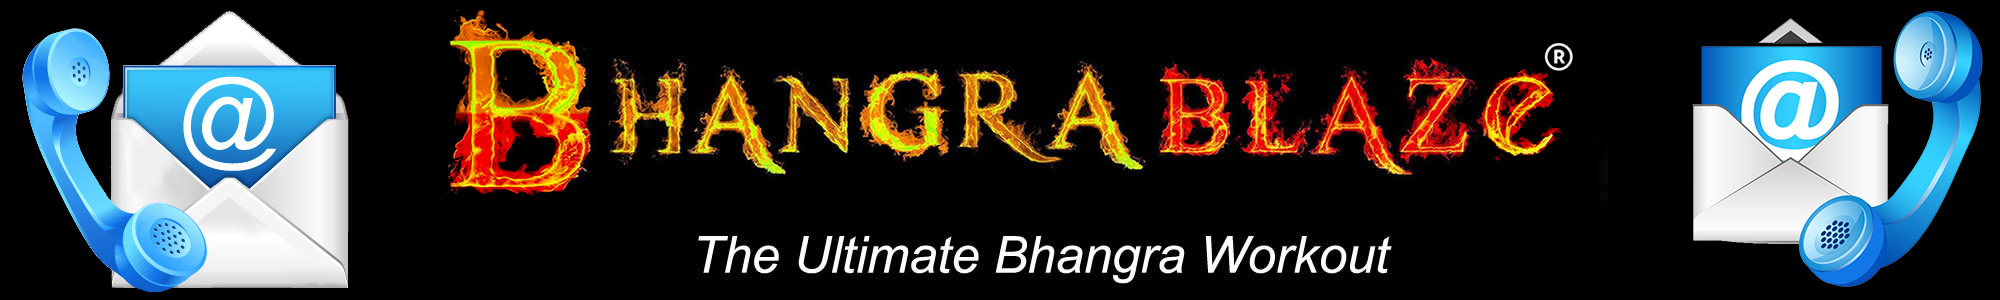 BhangraBlaze Contact Us